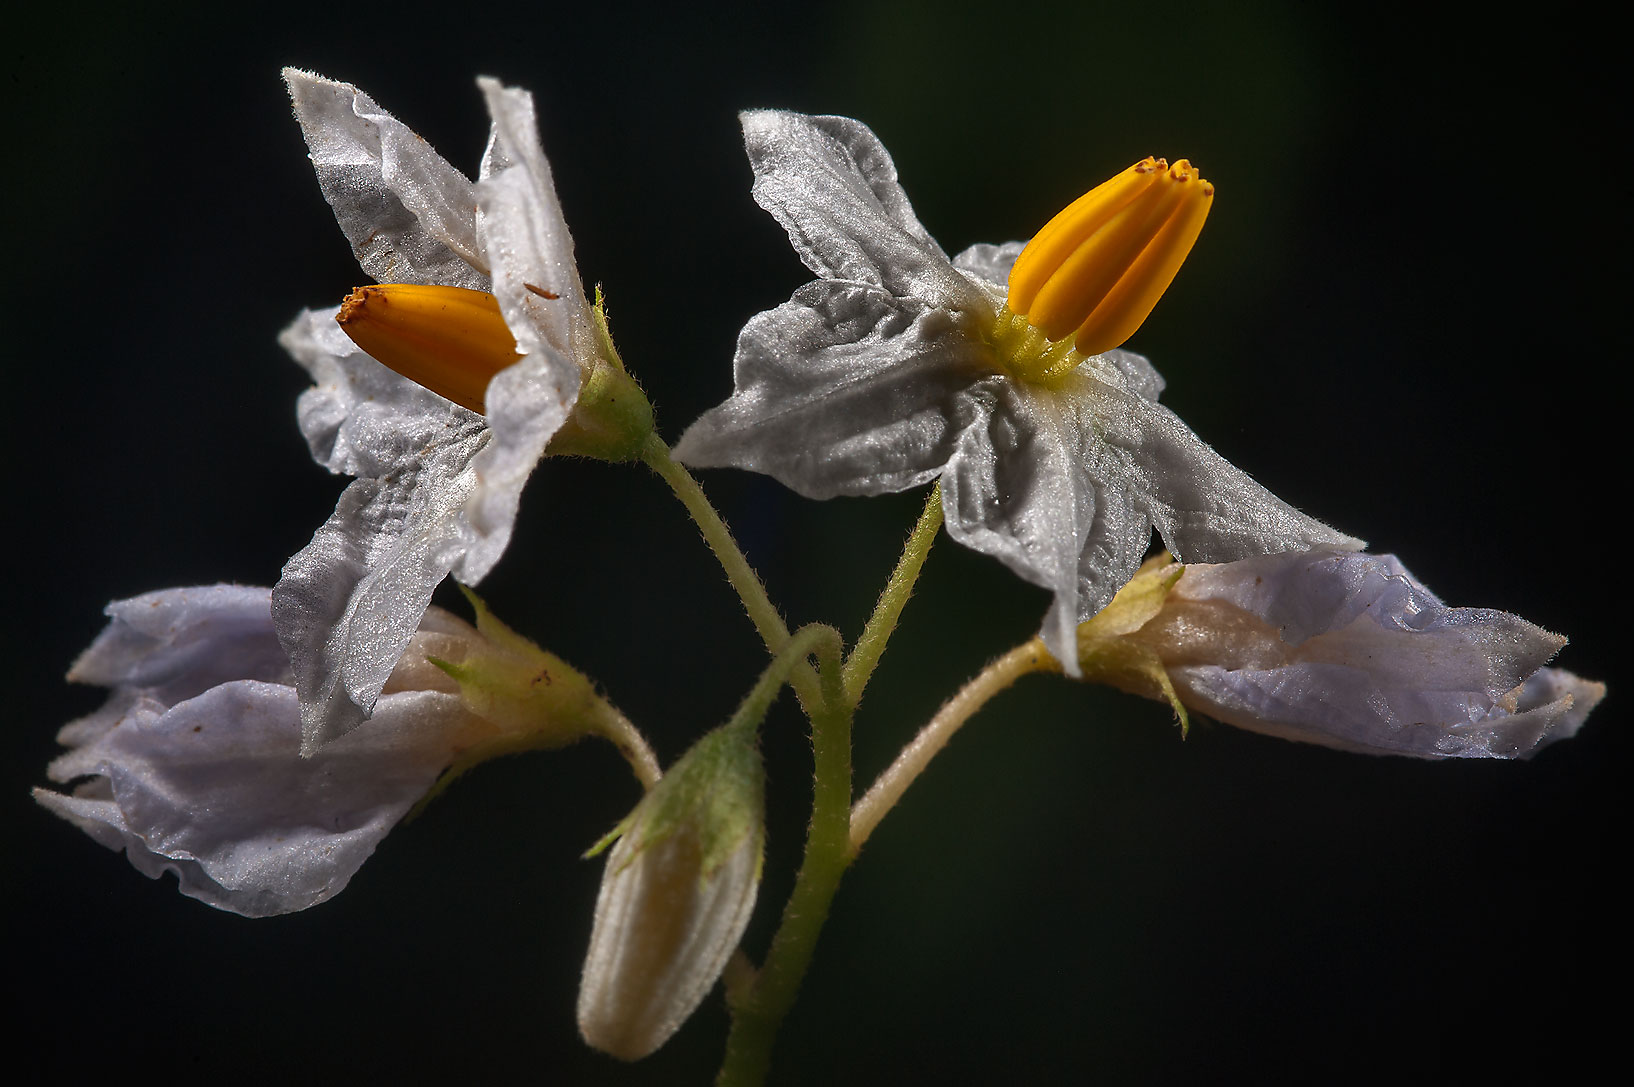 Solanum (nightshade) flowers in Lick Creek Park. College Station, Texas